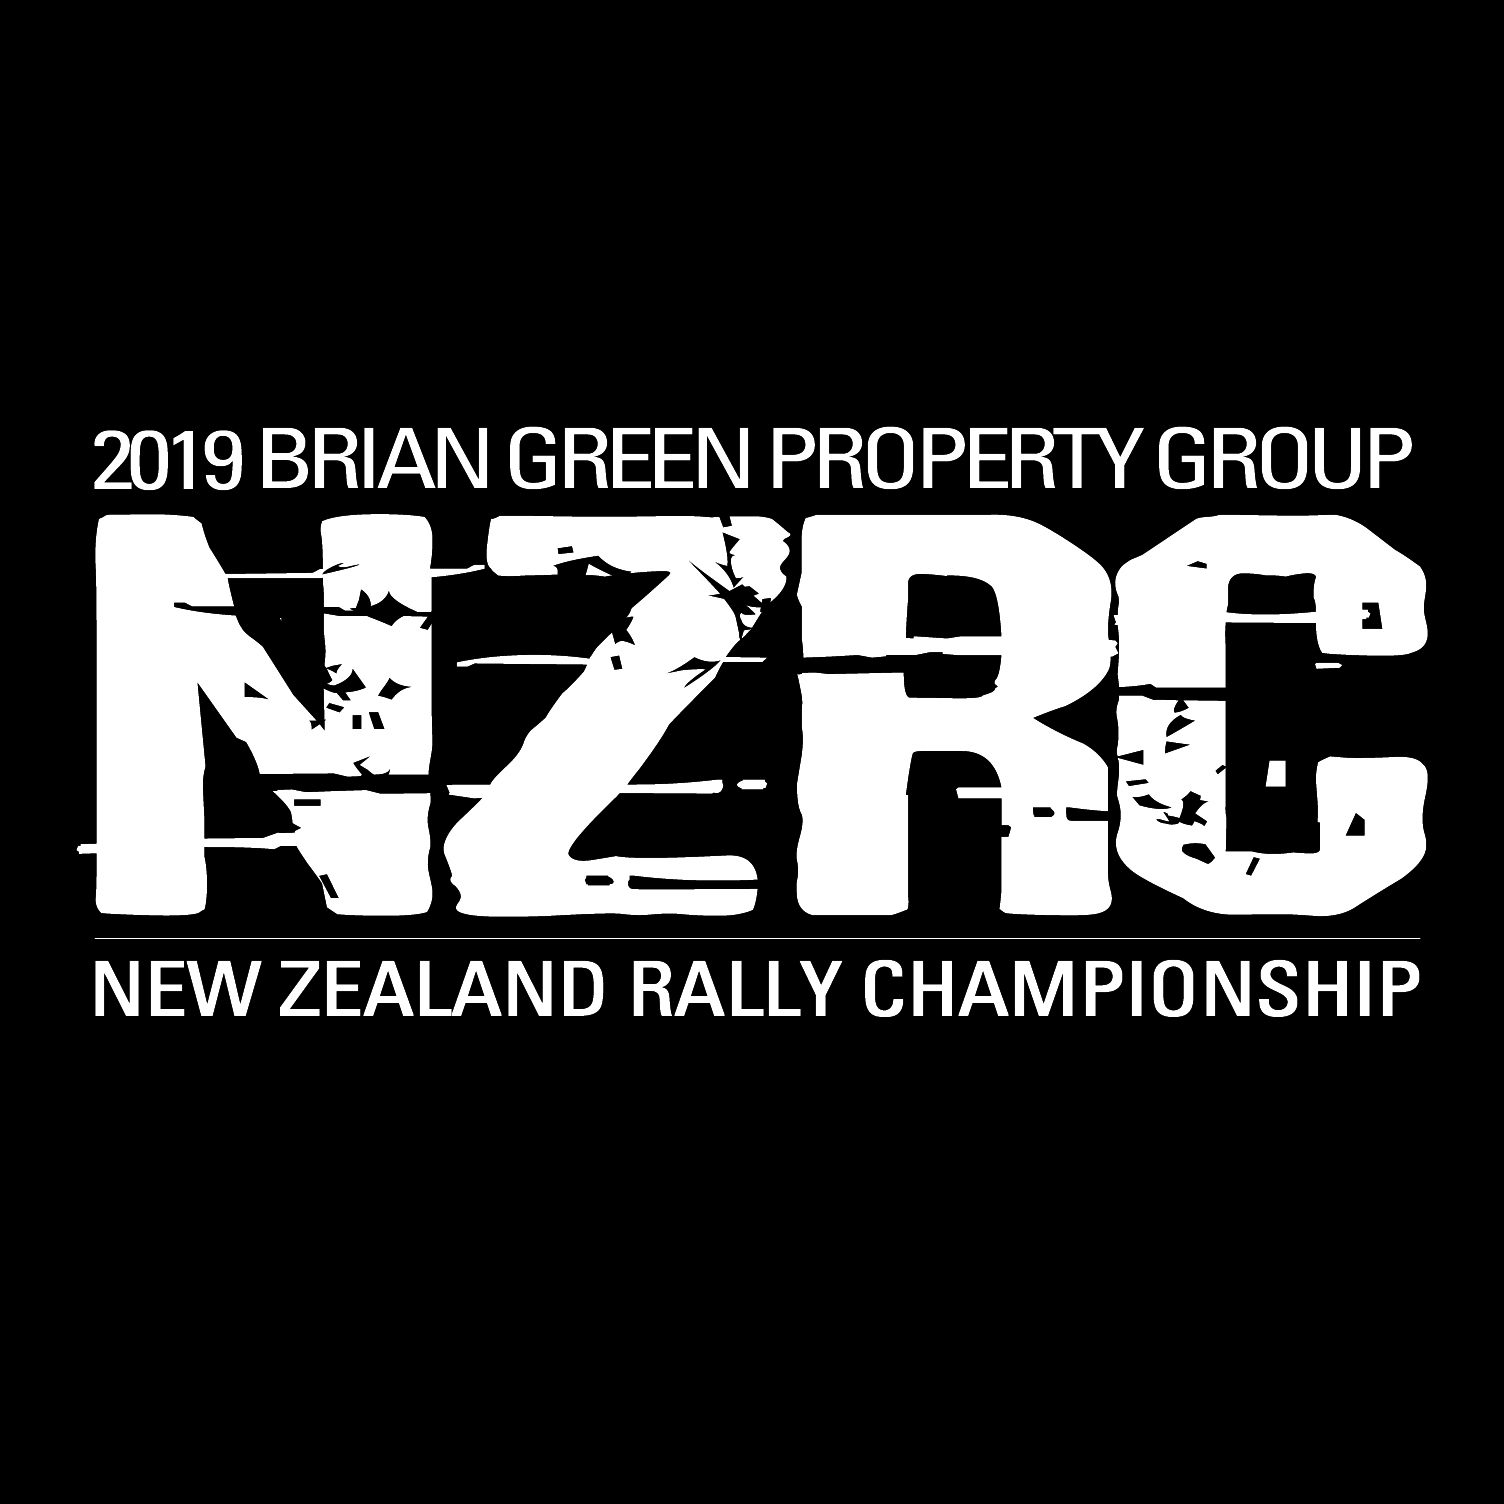 Summerfield finally getting to a sweet spot with new car | :: Brian Green Property Group New Zealand Rally Championship ::